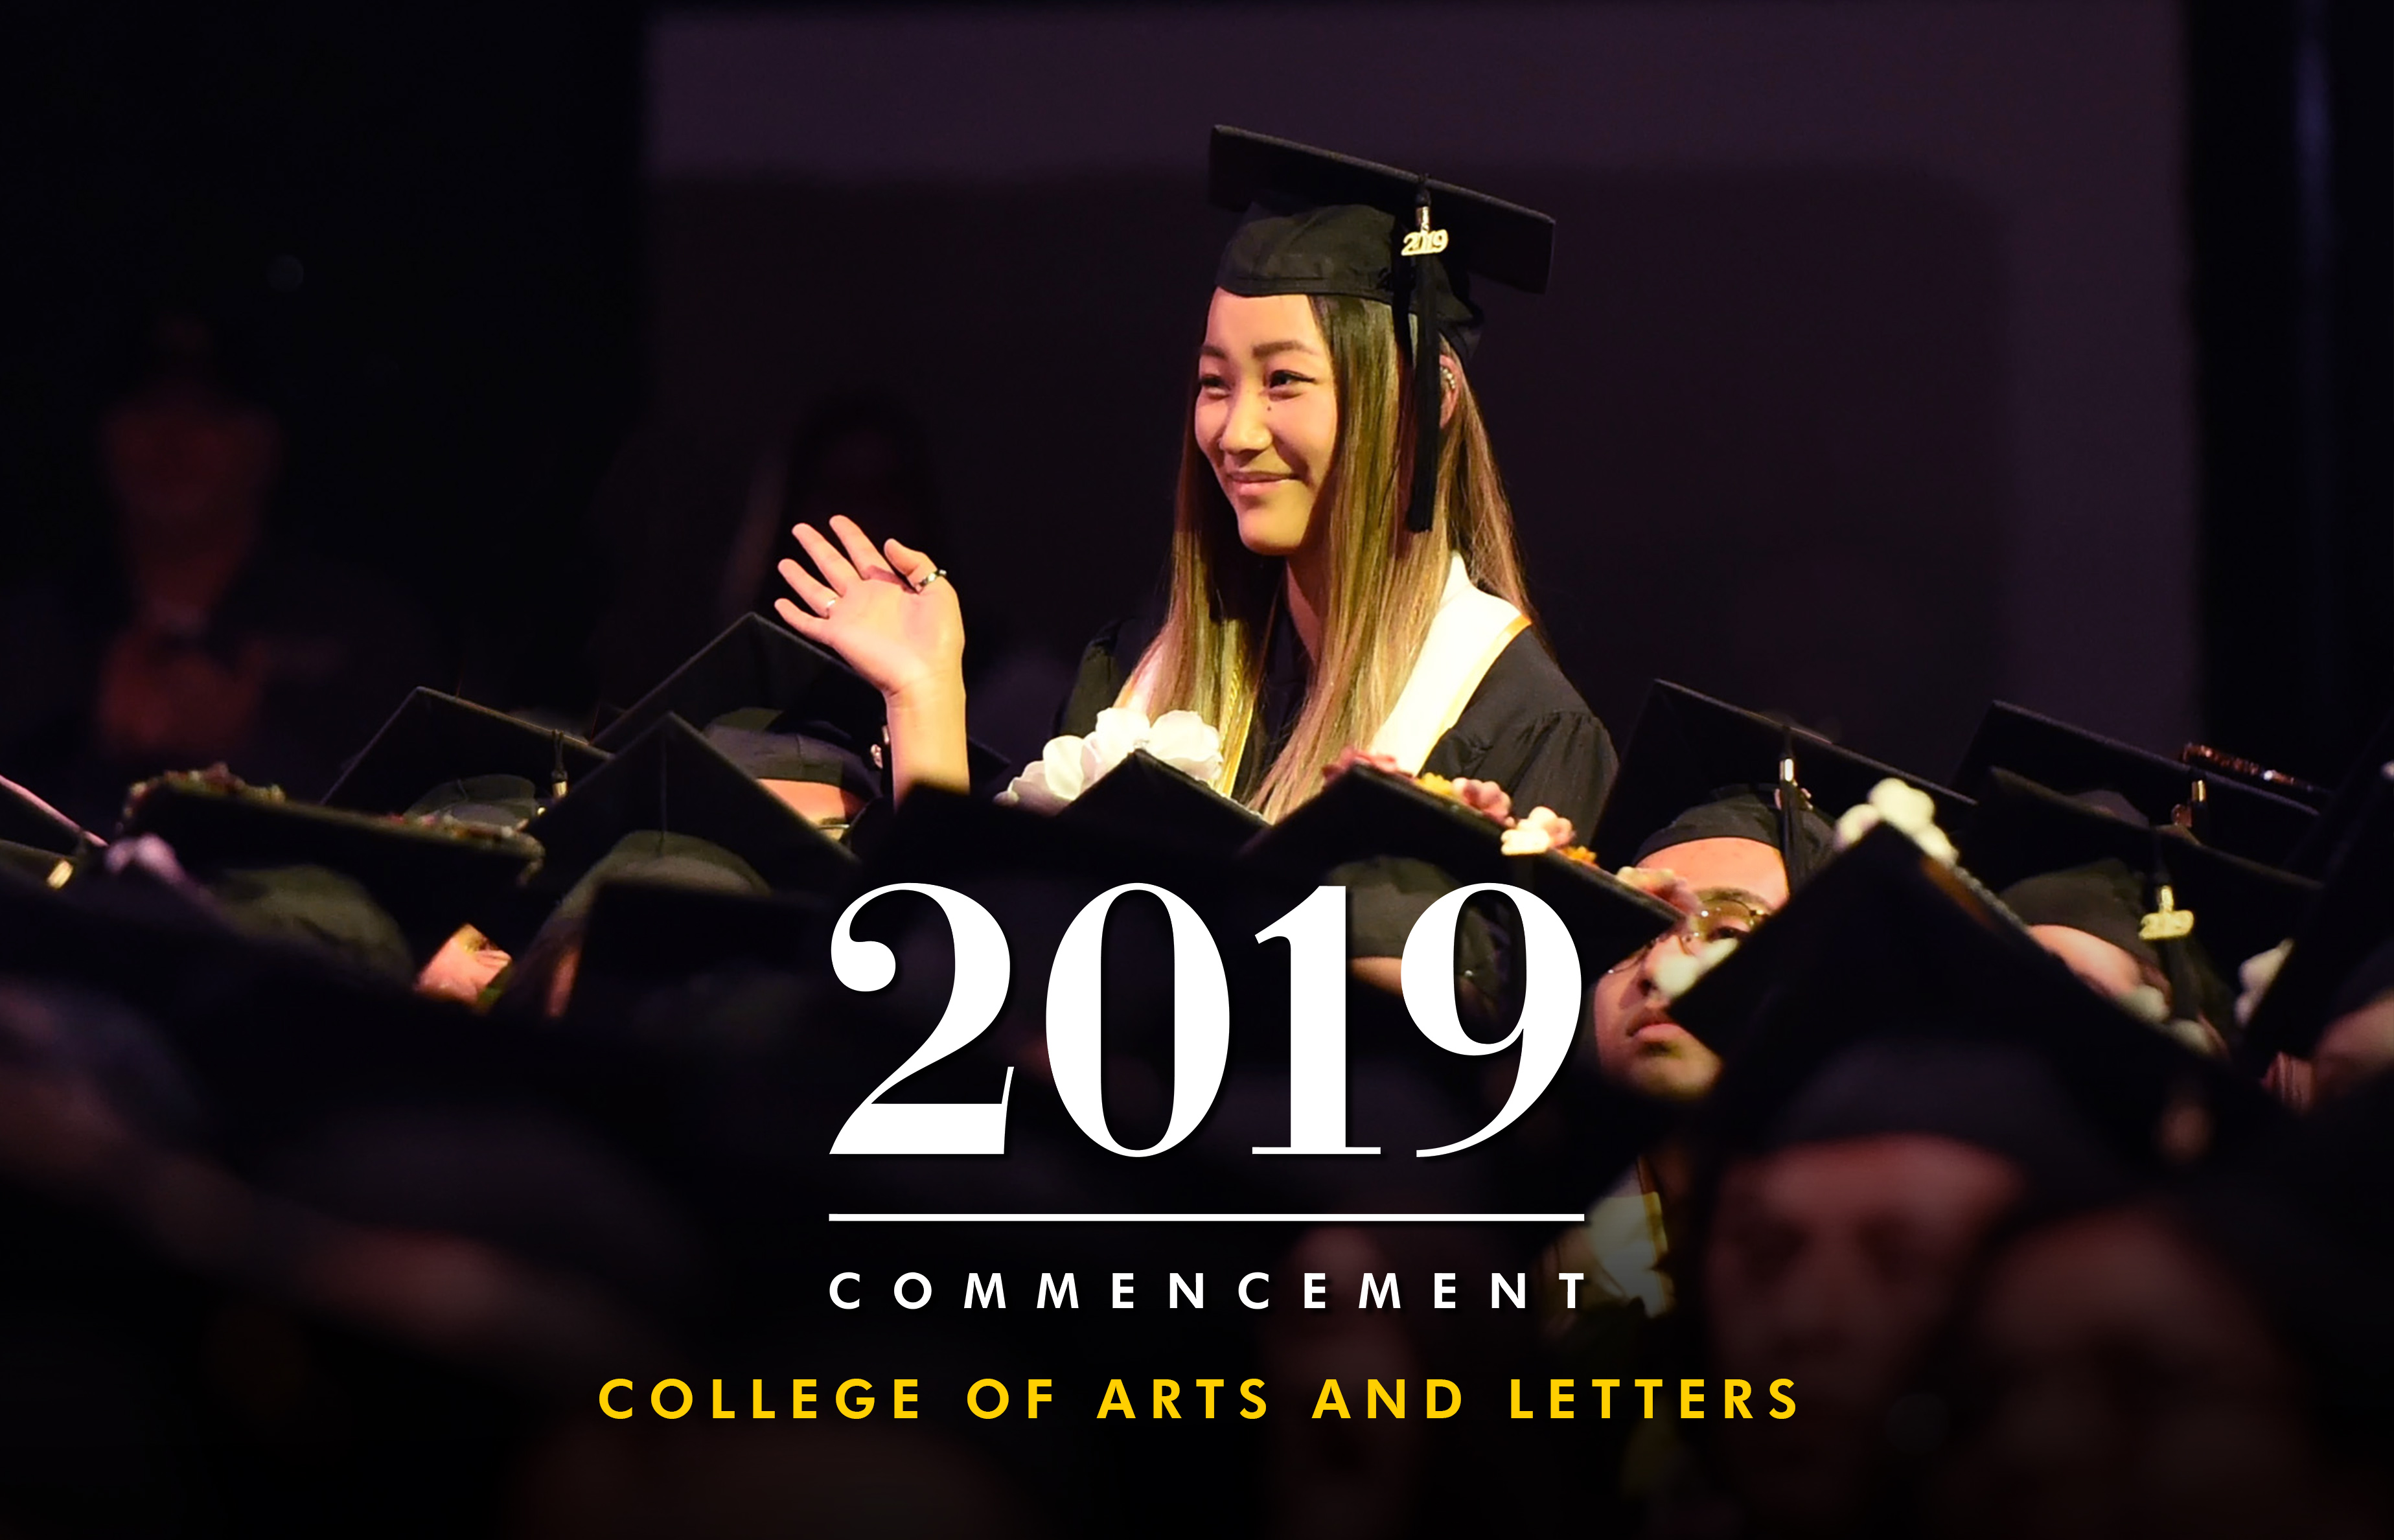 College of Arts of Letters Commencement Ceremony Photo